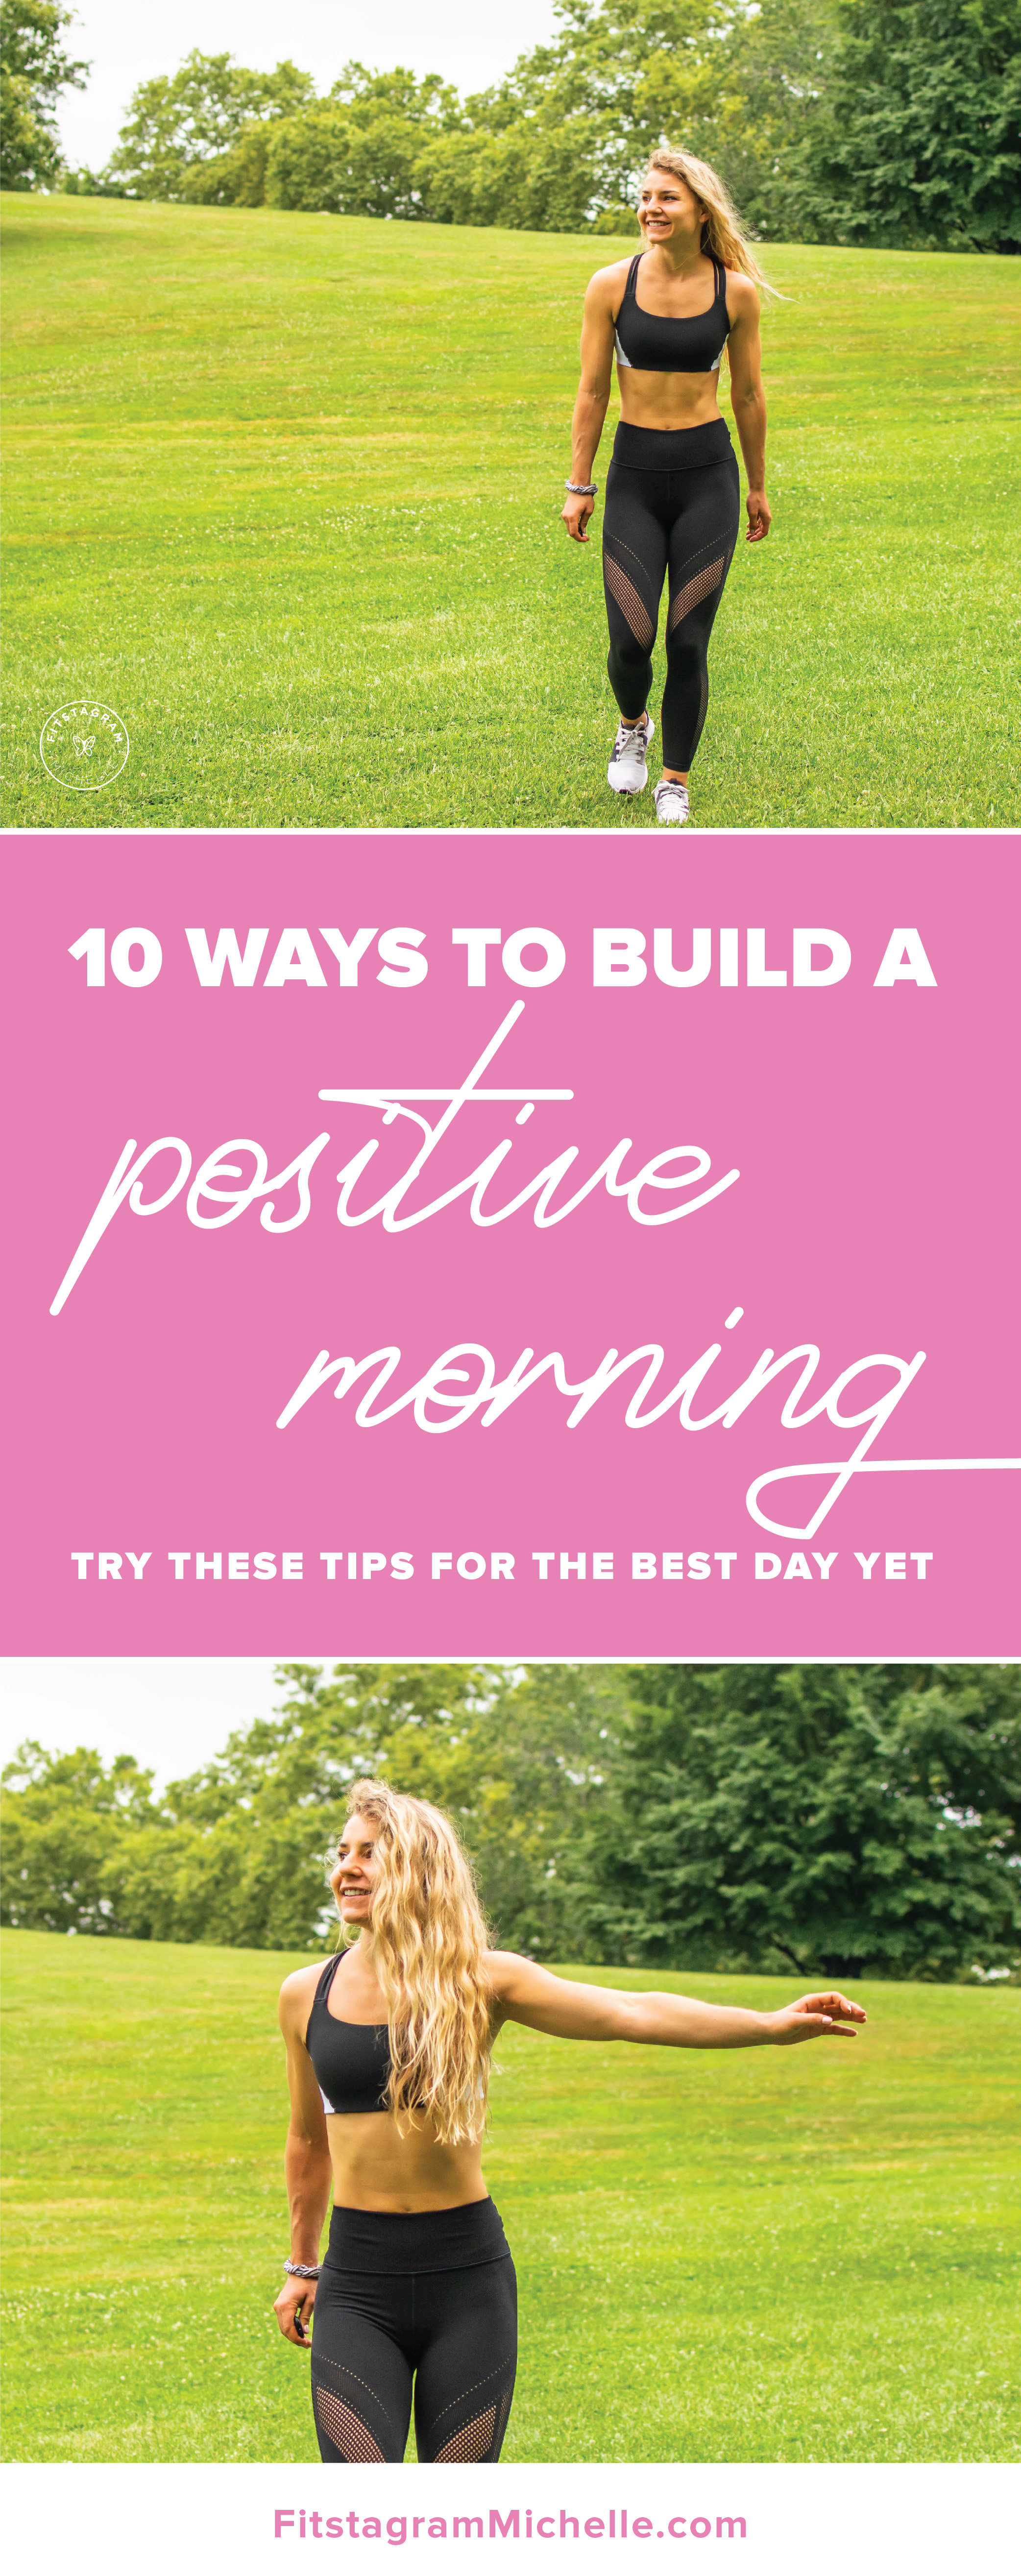 10 ways to build a positive morning. Try these tips to start your day off right! Prepare the night before, do a devotional, Wear a cute outfit, get fresh air, etc.